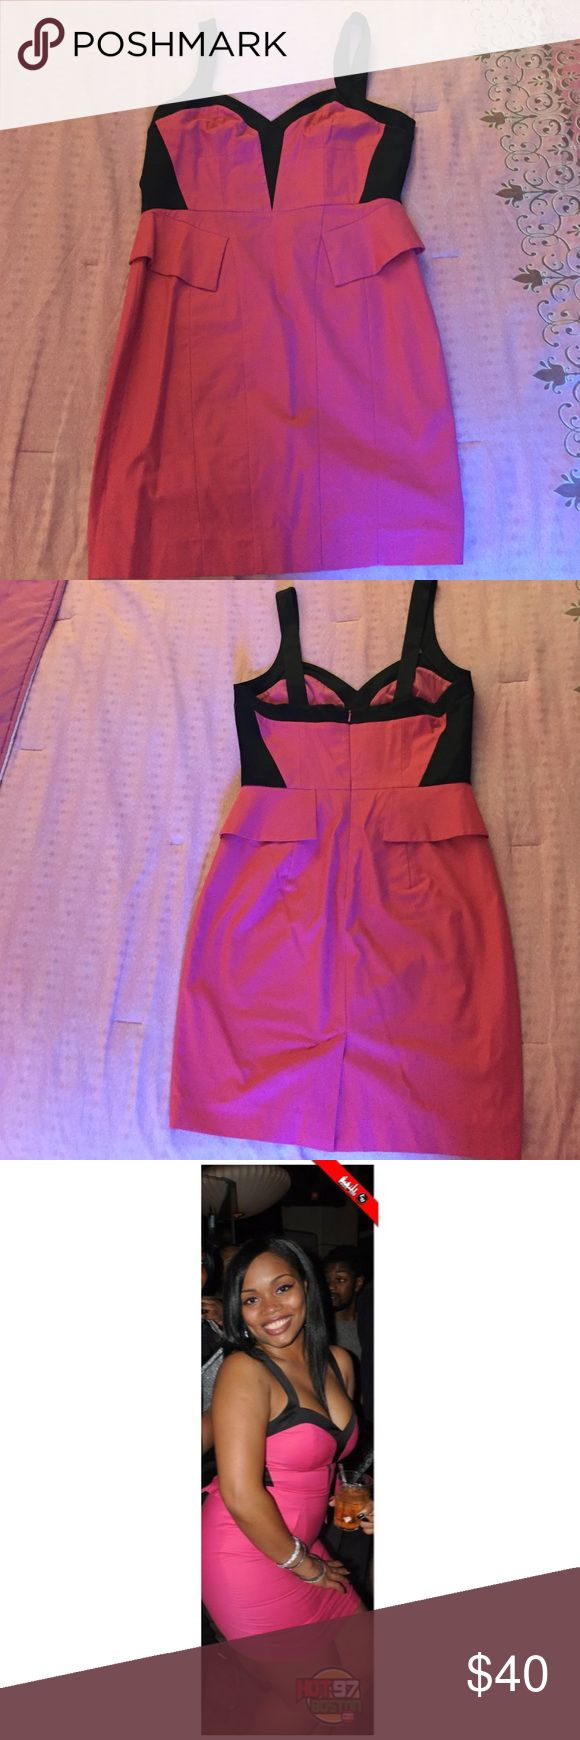 Bebe Black and Pink Pencil Dress Bebe Black and Pink Pencil Dress with Peplum Detail. Size 10. Worn Once. Excellent Condition! bebe Dresses Midi